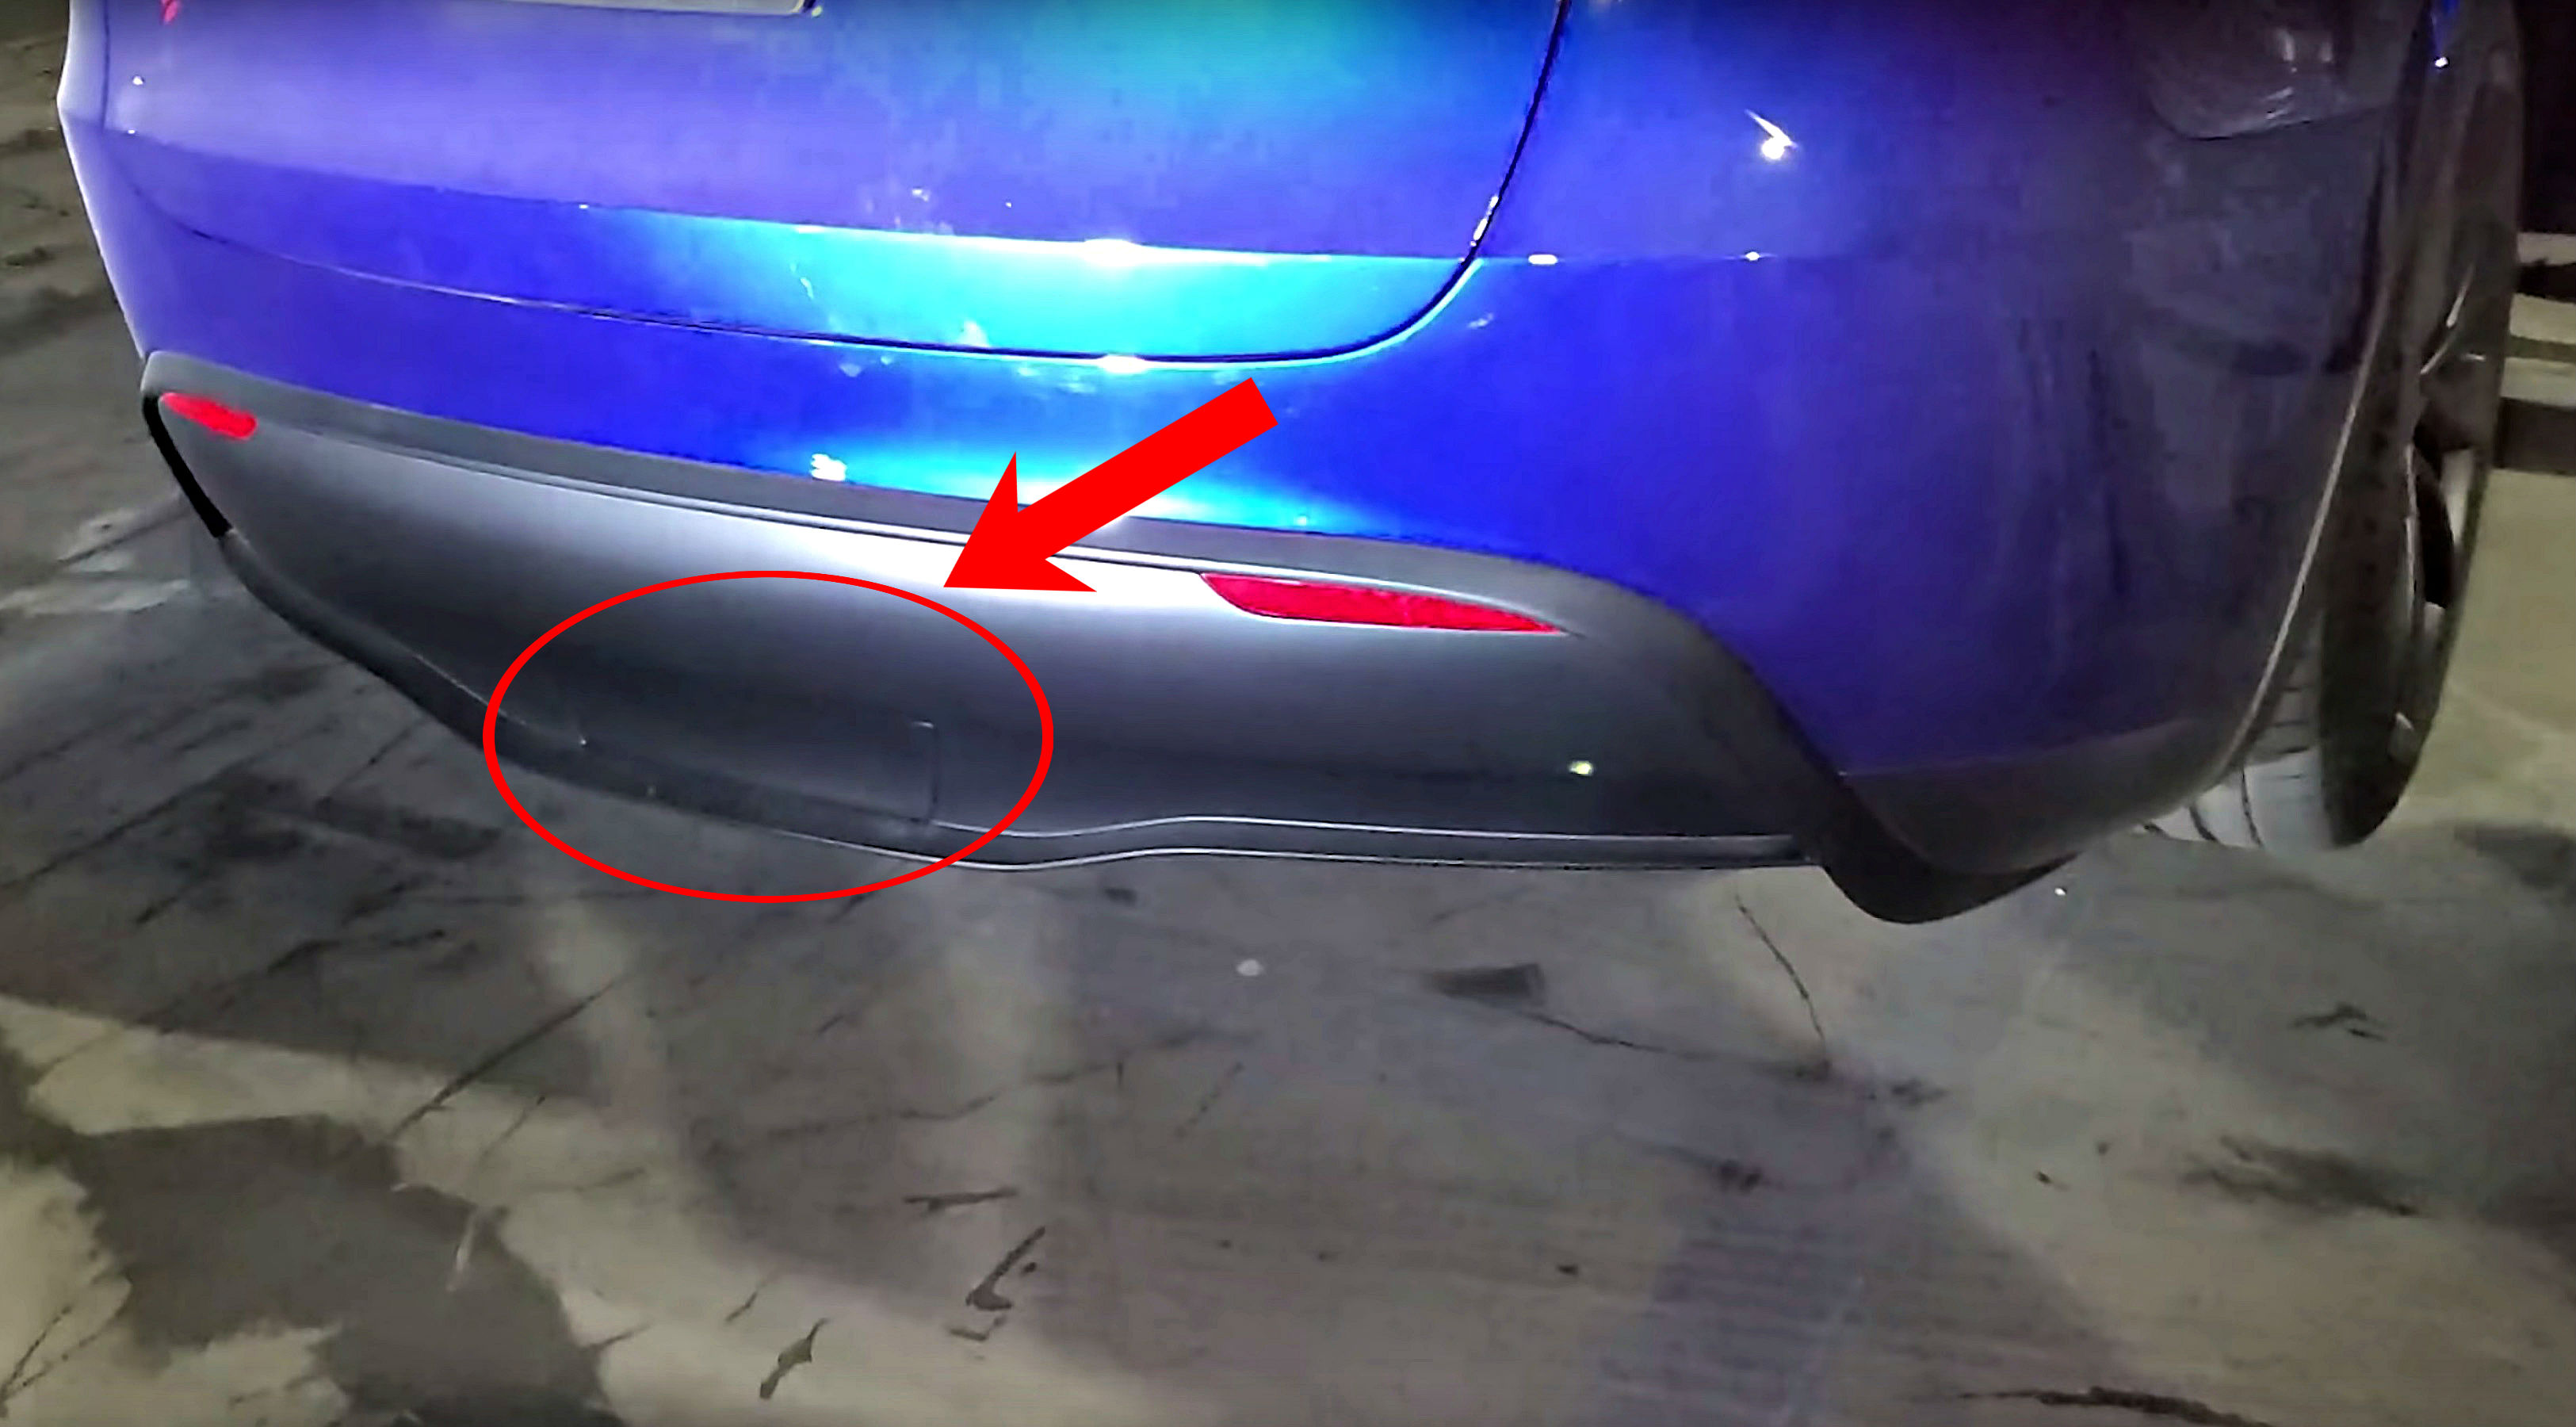 Tesla Model Y towing capability teased with rear cover plate